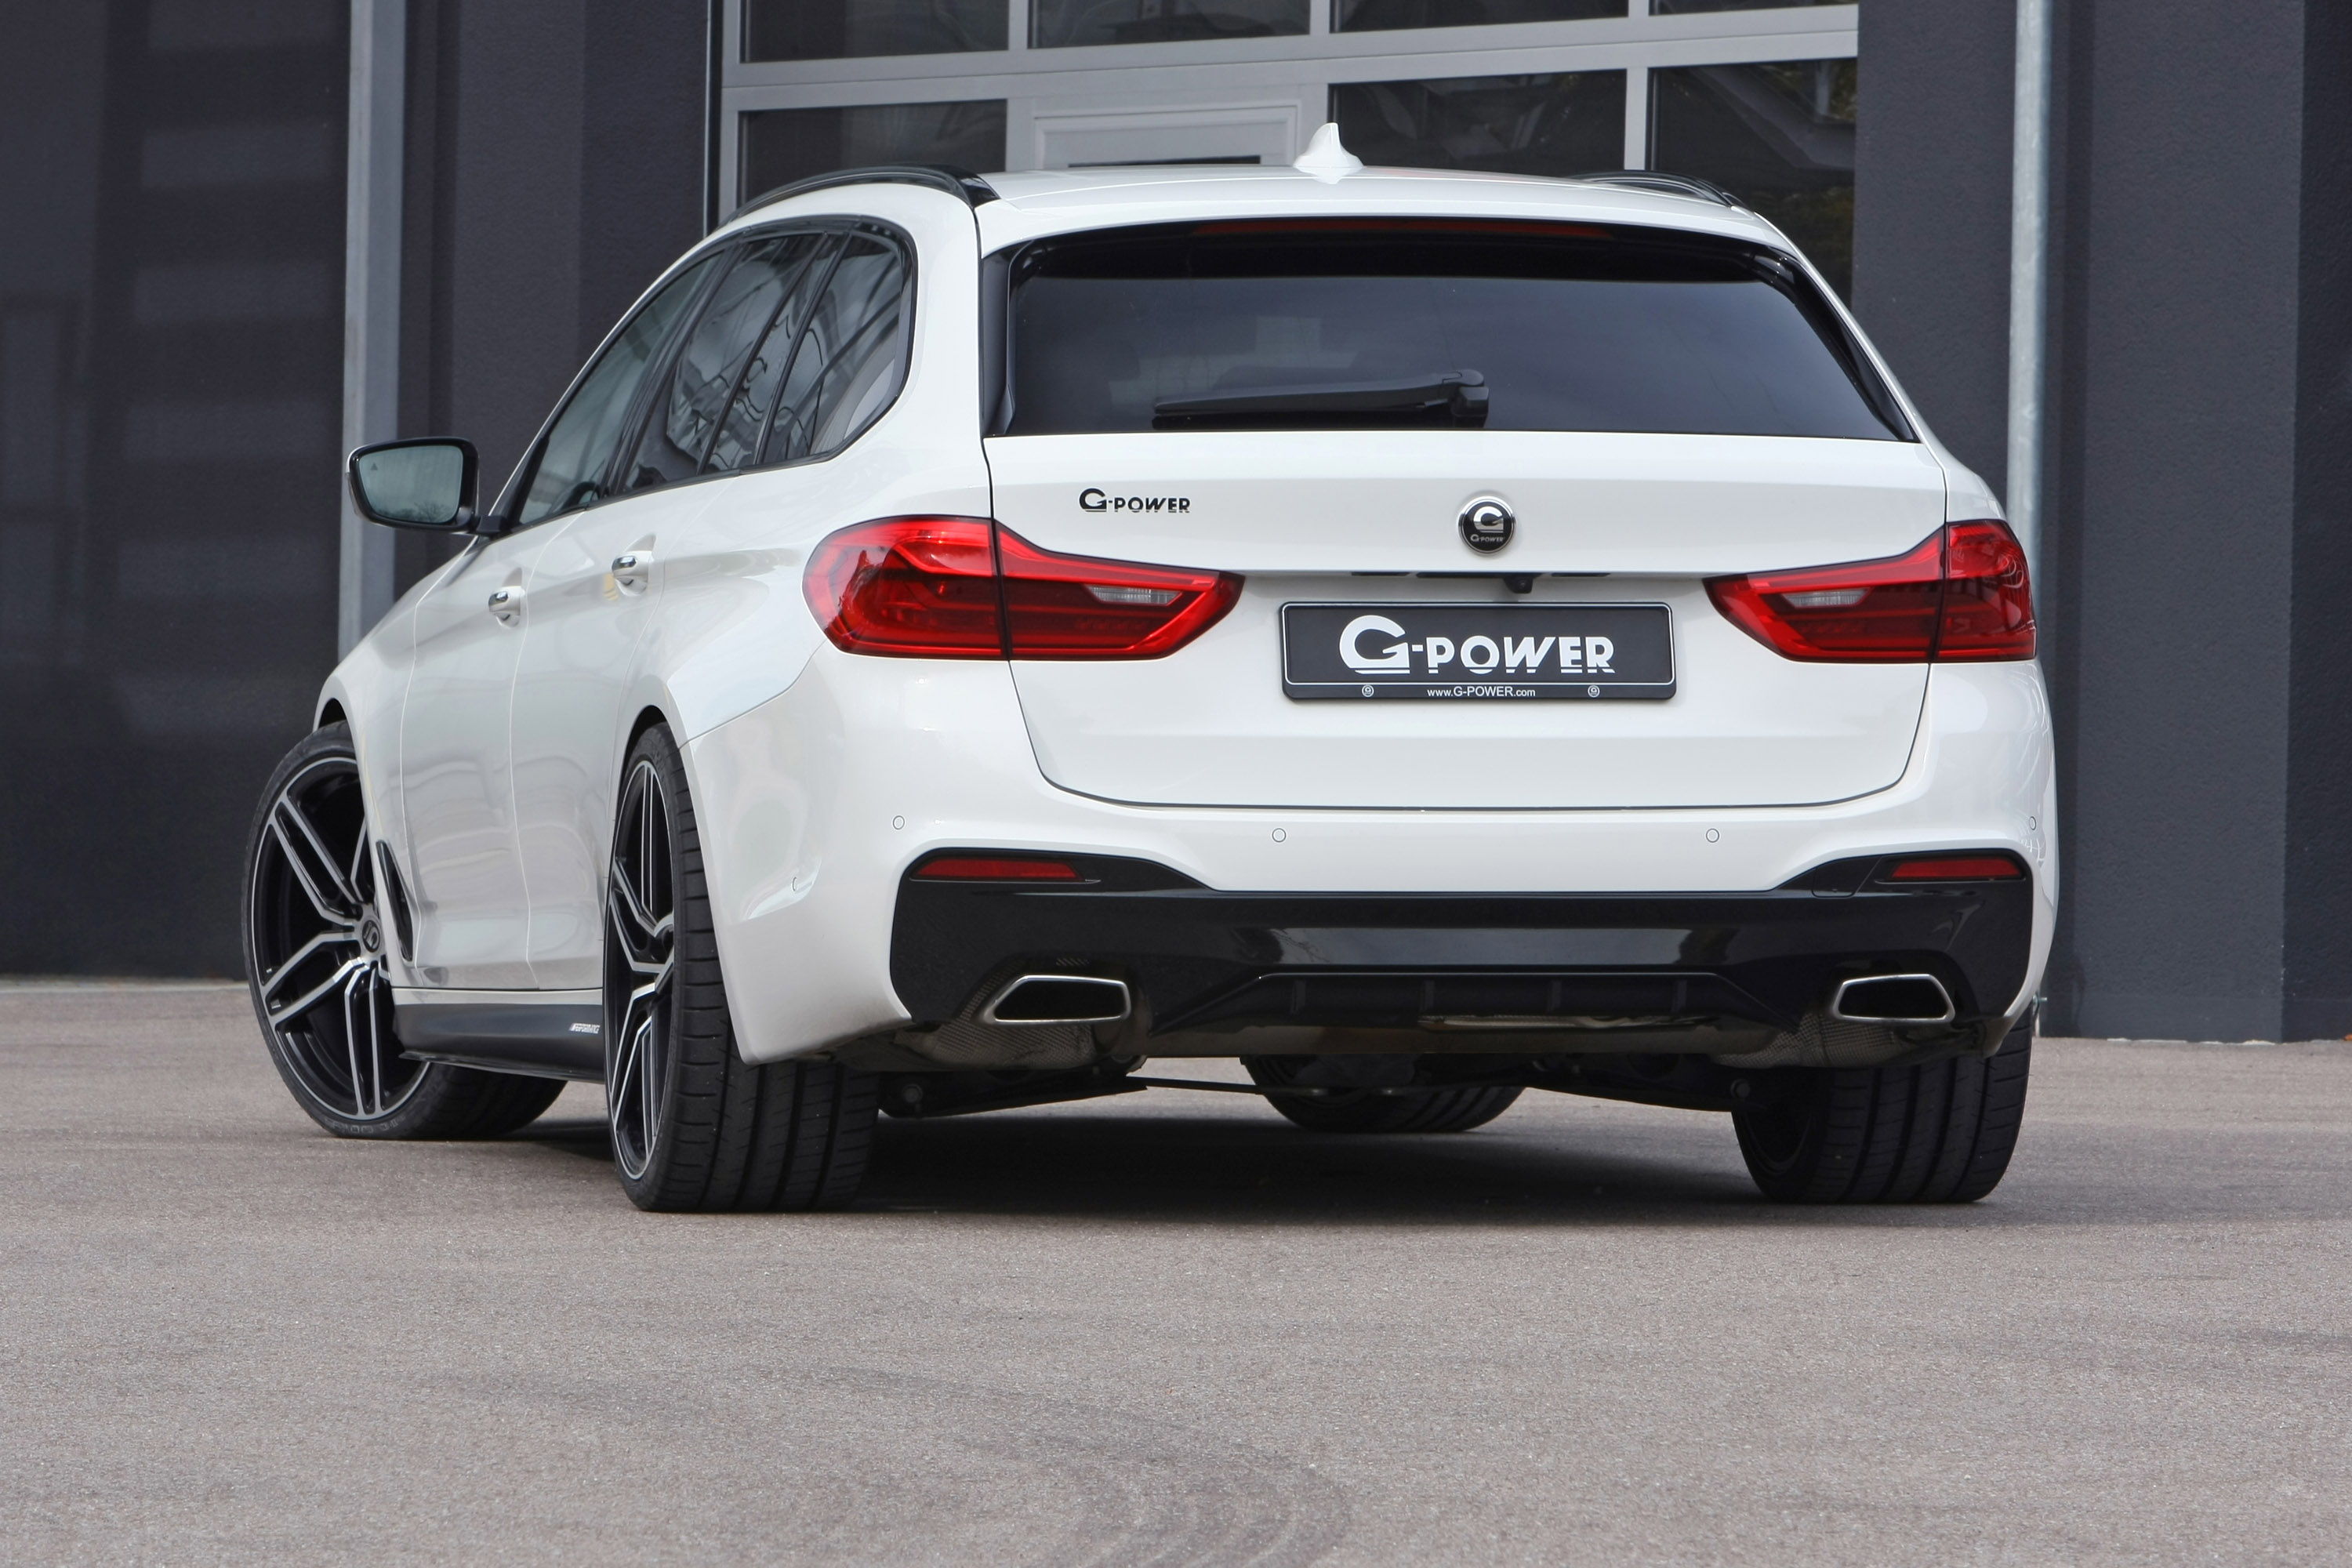 2018 G Power Bmw 540i Picture 135374